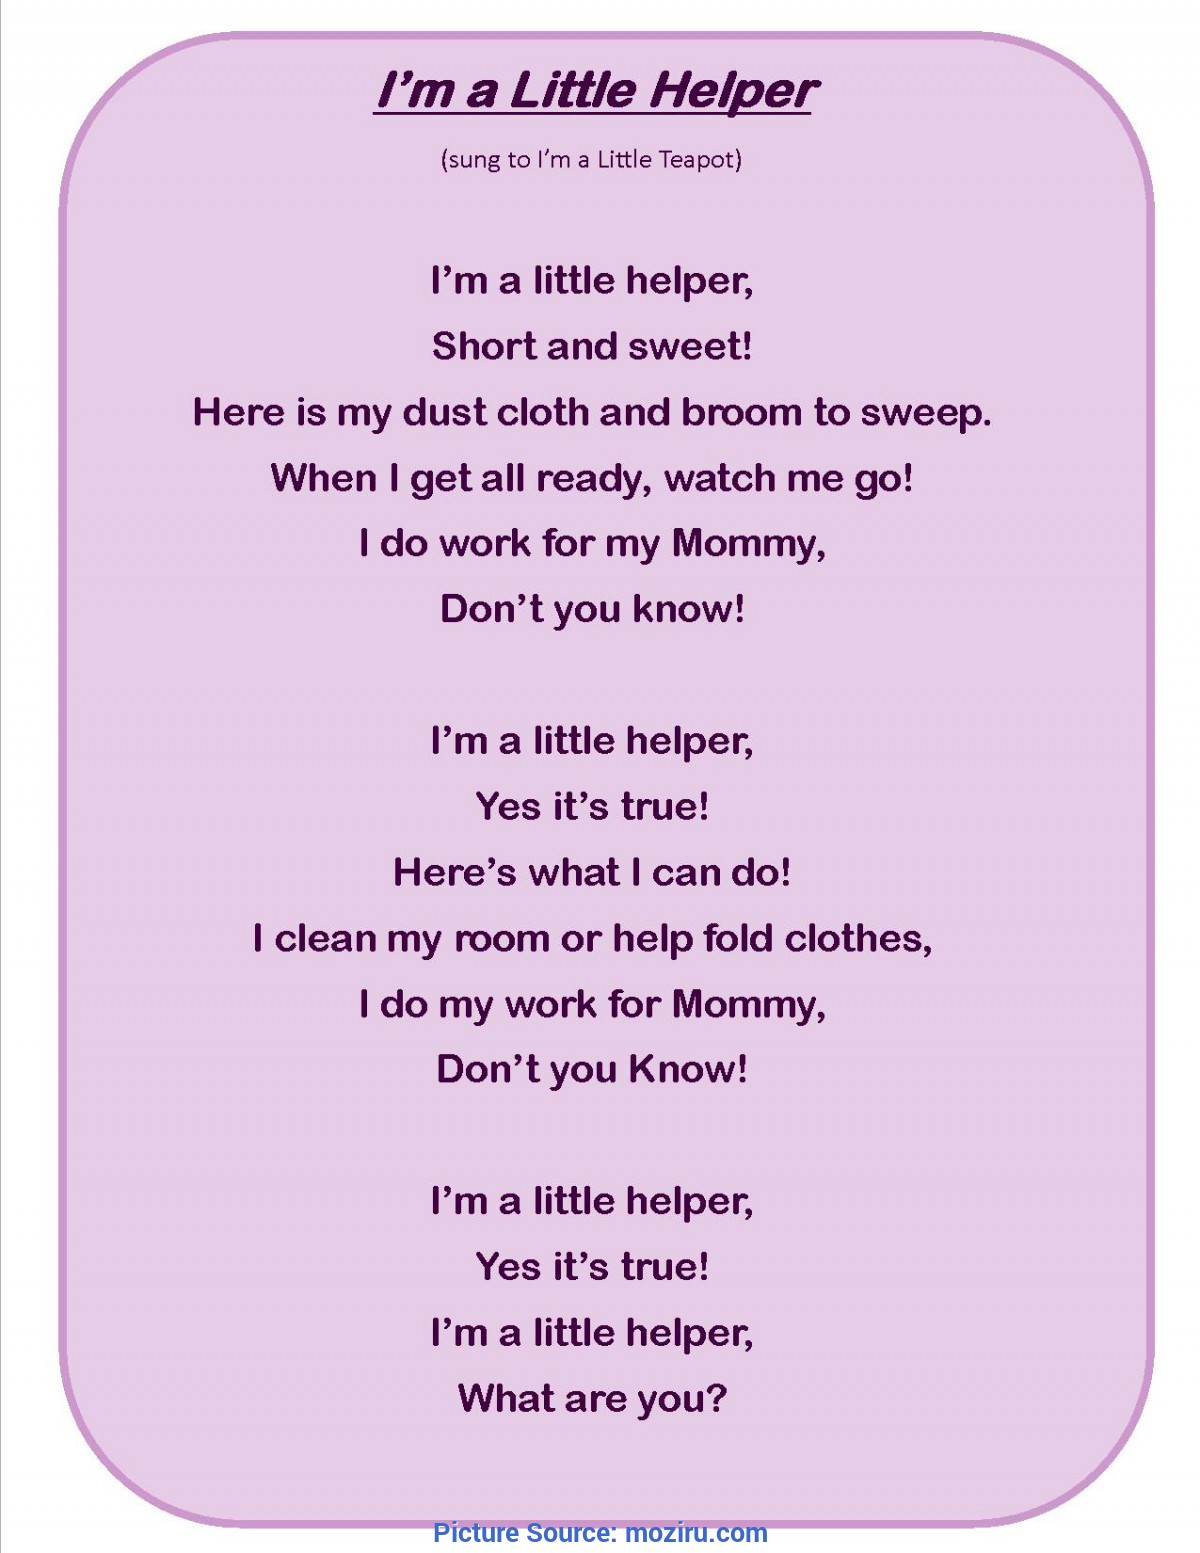 Special Community Helpers Songs For Kindergarten Song Clipart Helper - Pencil And In Color Song Clipart He